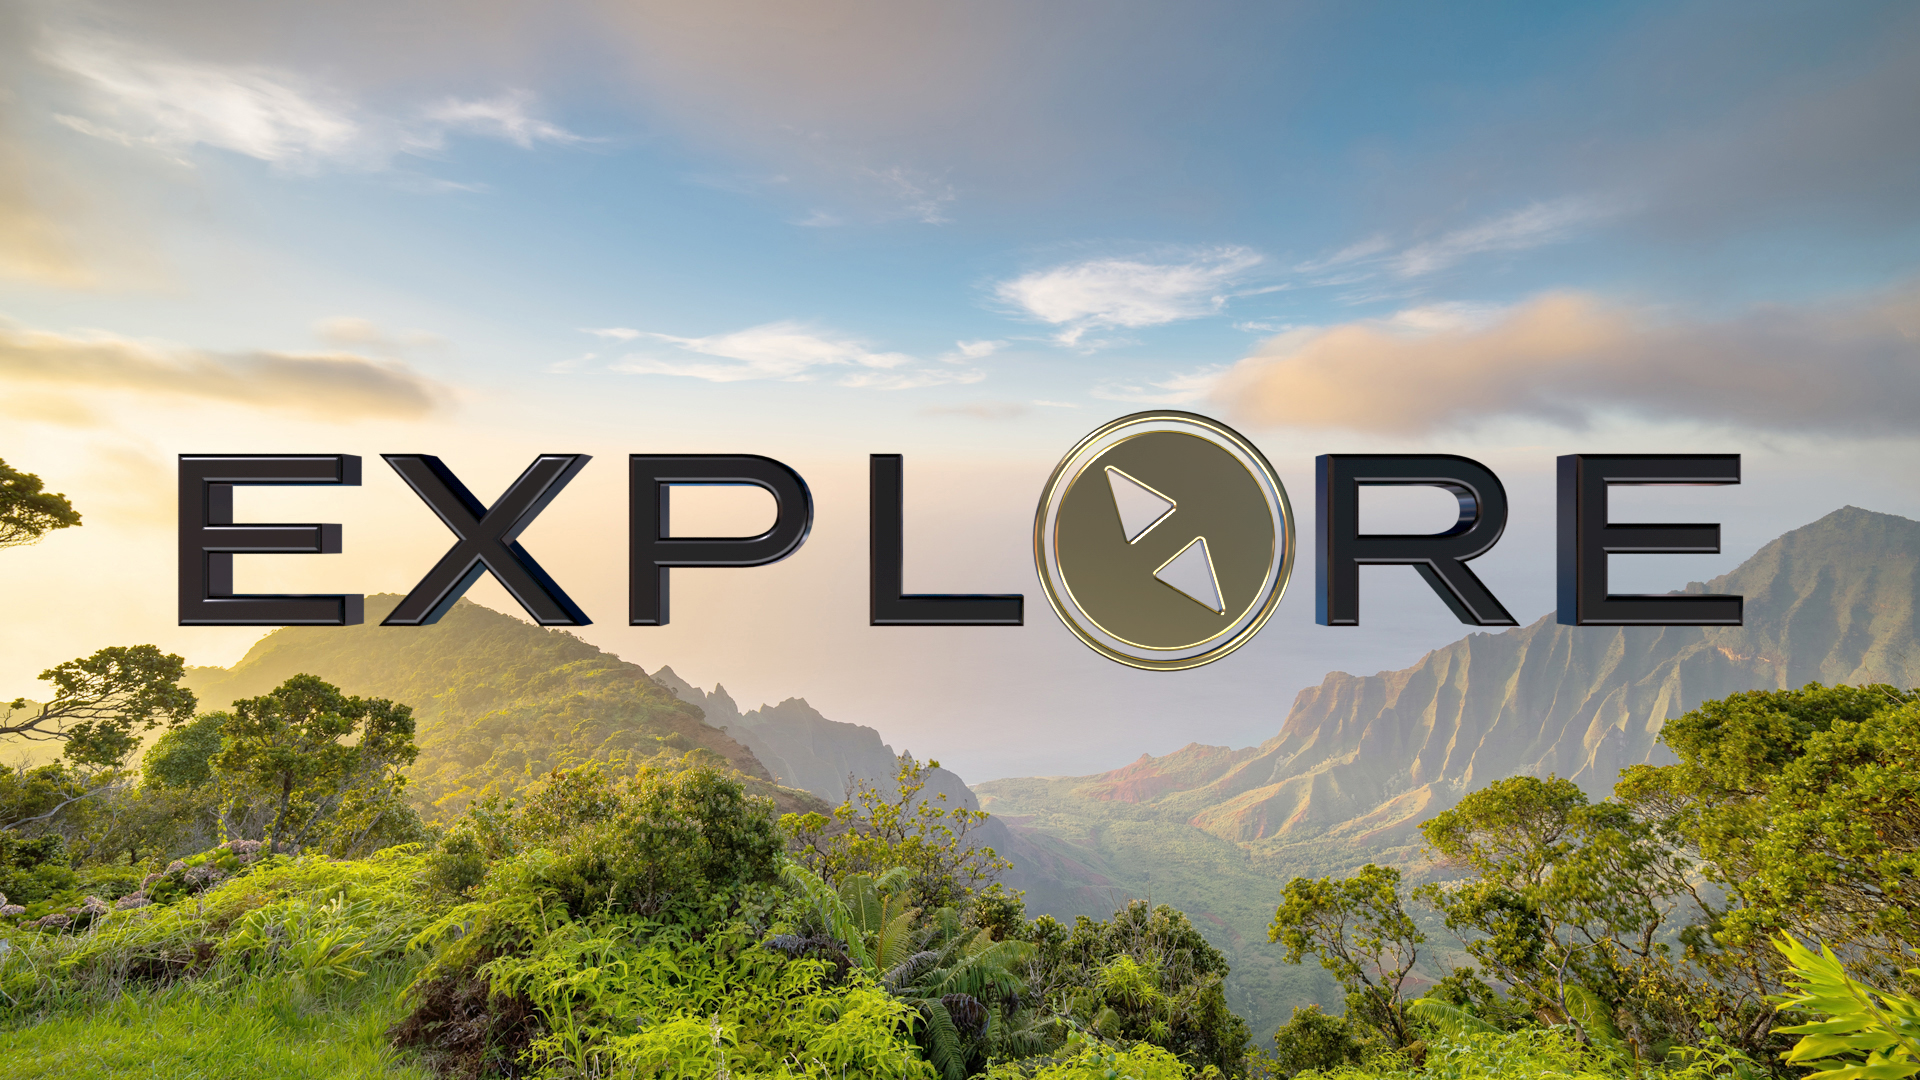 Covering topics as diverse as culture, heritage, cuisine, sports and lifestyle. Explore is a melting pot ​of experiences, an eye opener on the world.